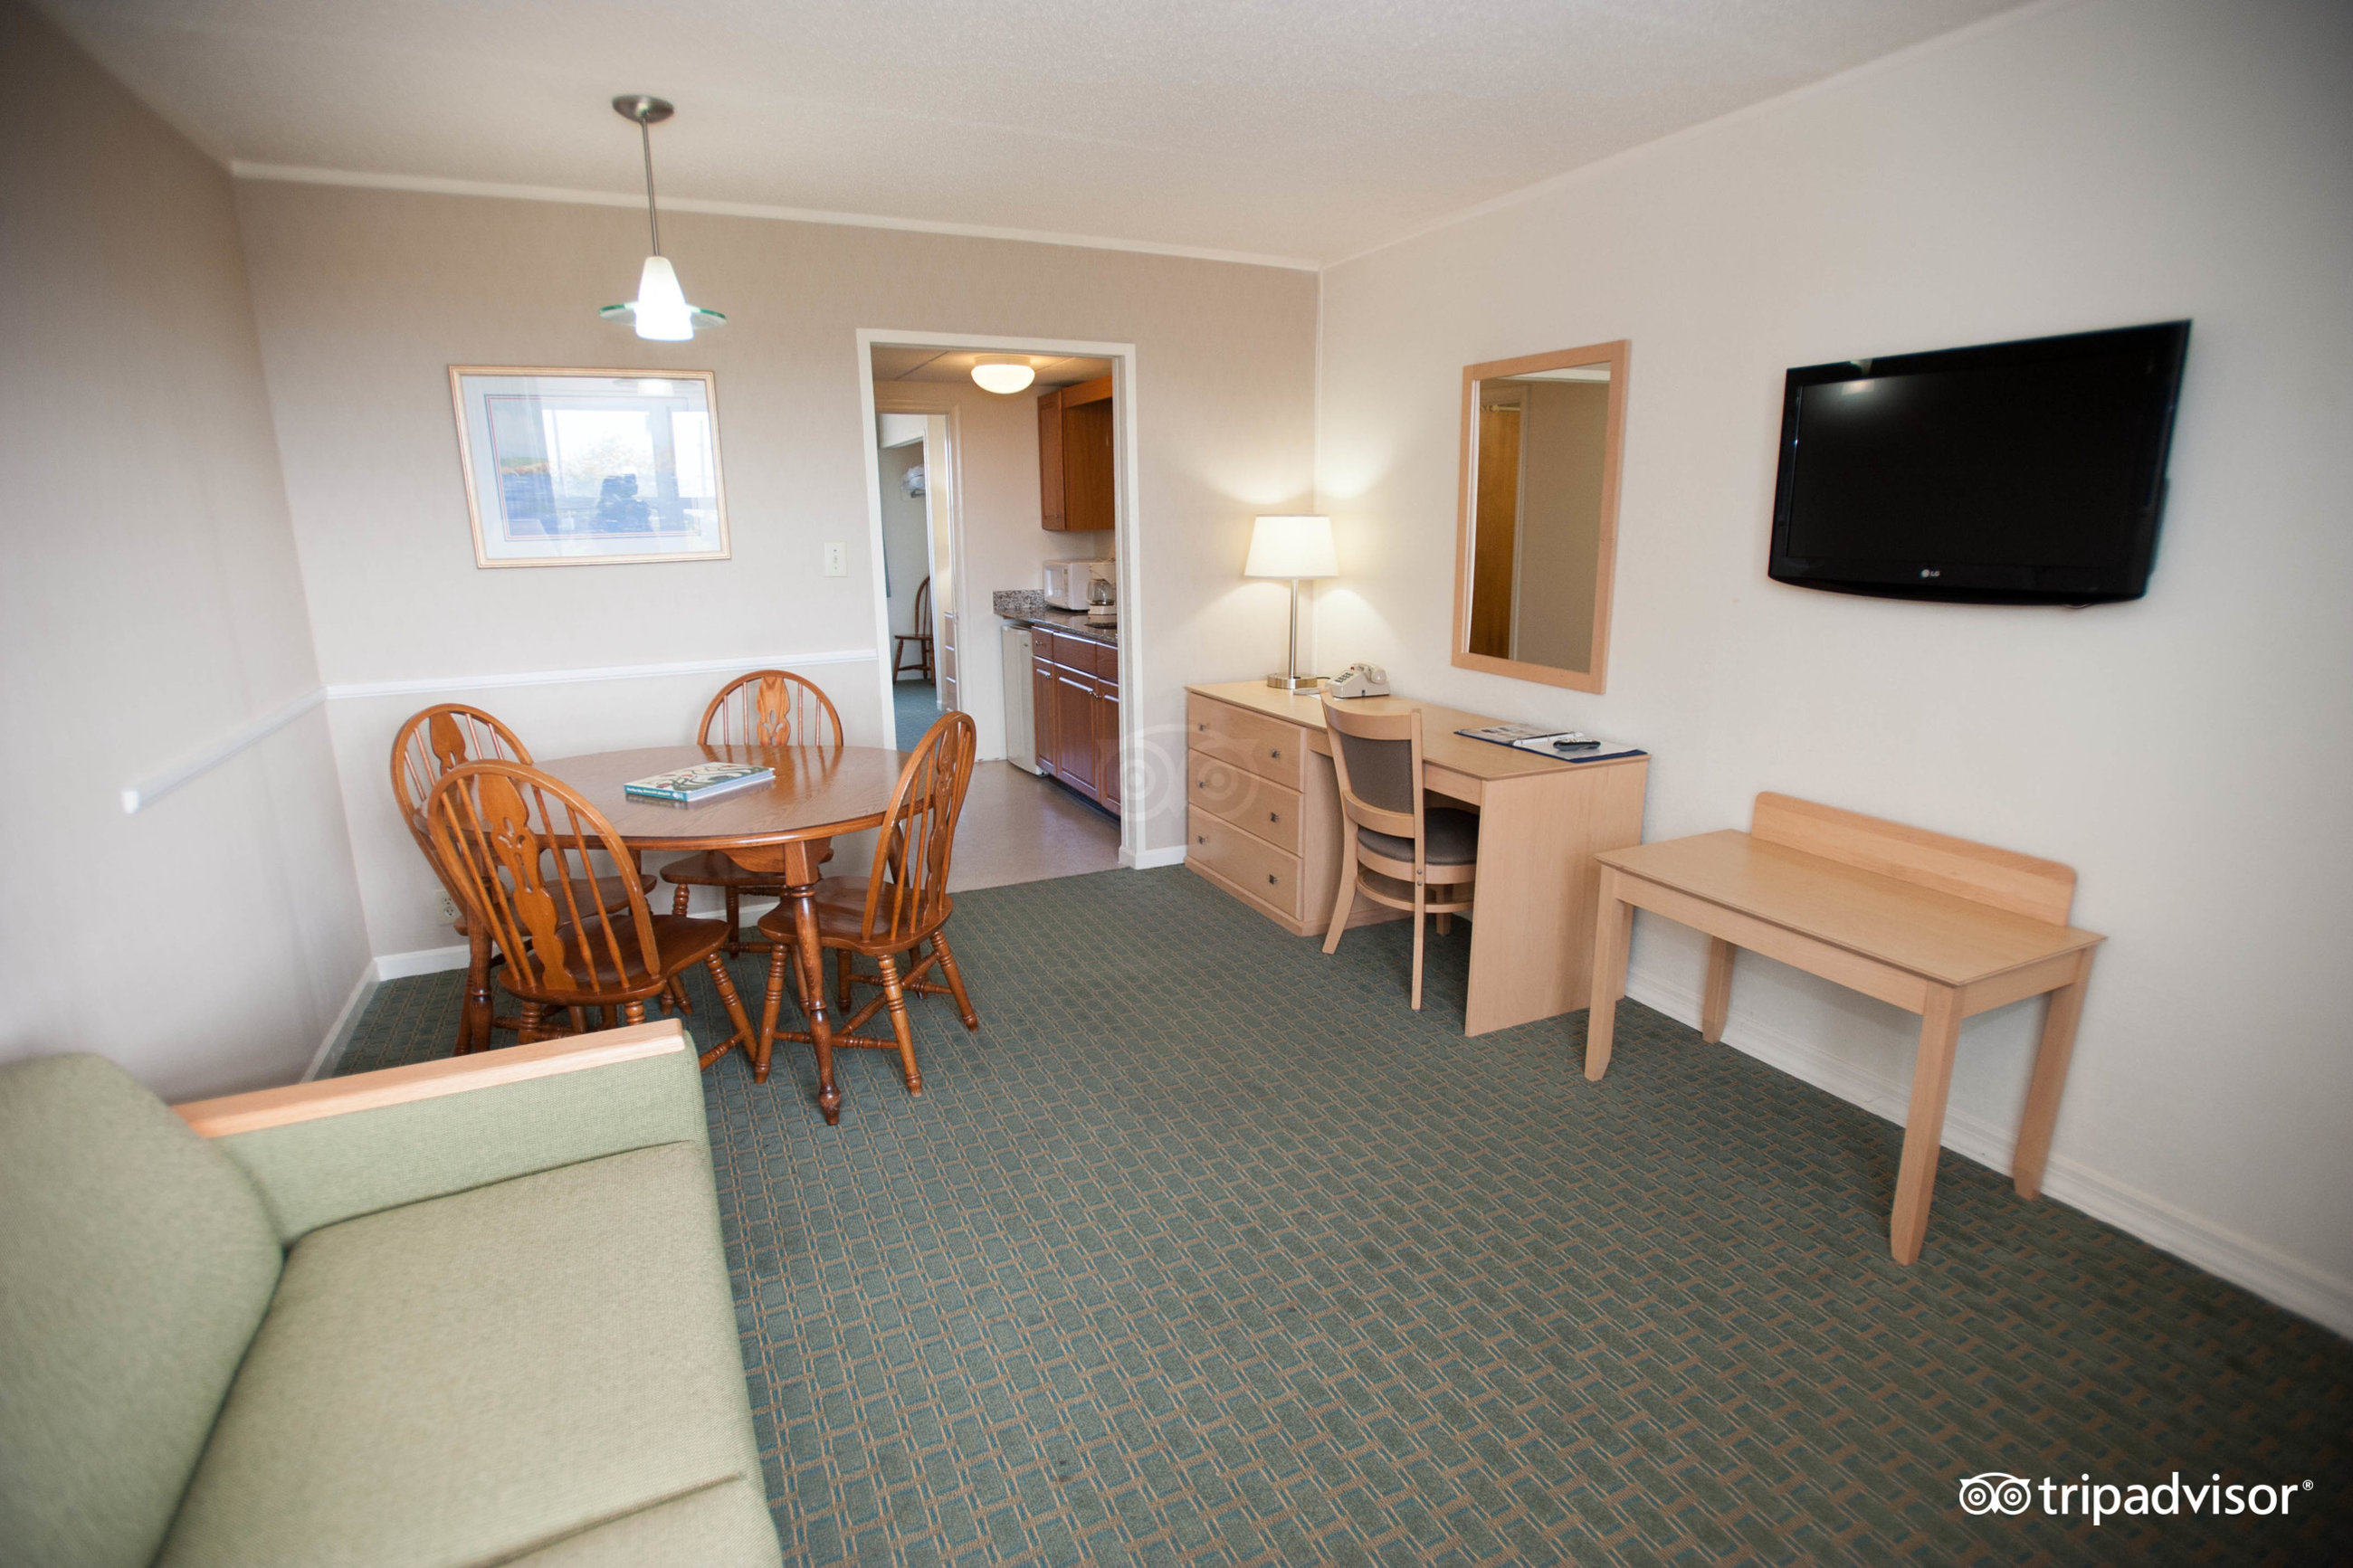 2 bedroom suites cape may nj. we search 200+ sites to find the best hotel prices 2 bedroom suites cape may nj